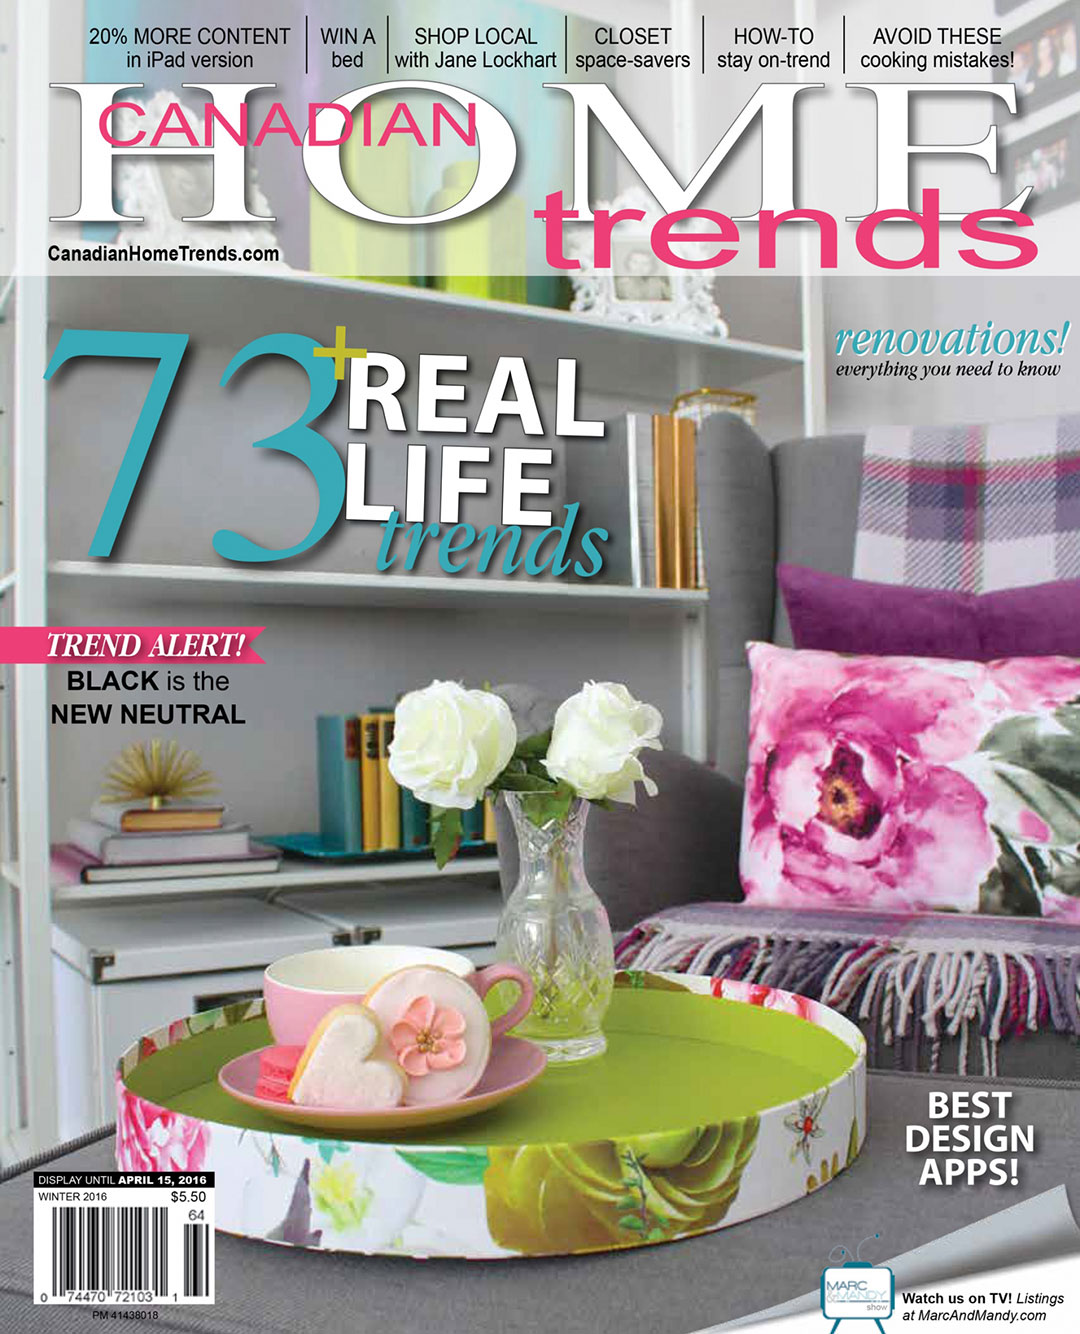 Canadian-Home-Trends-Magazine-image1